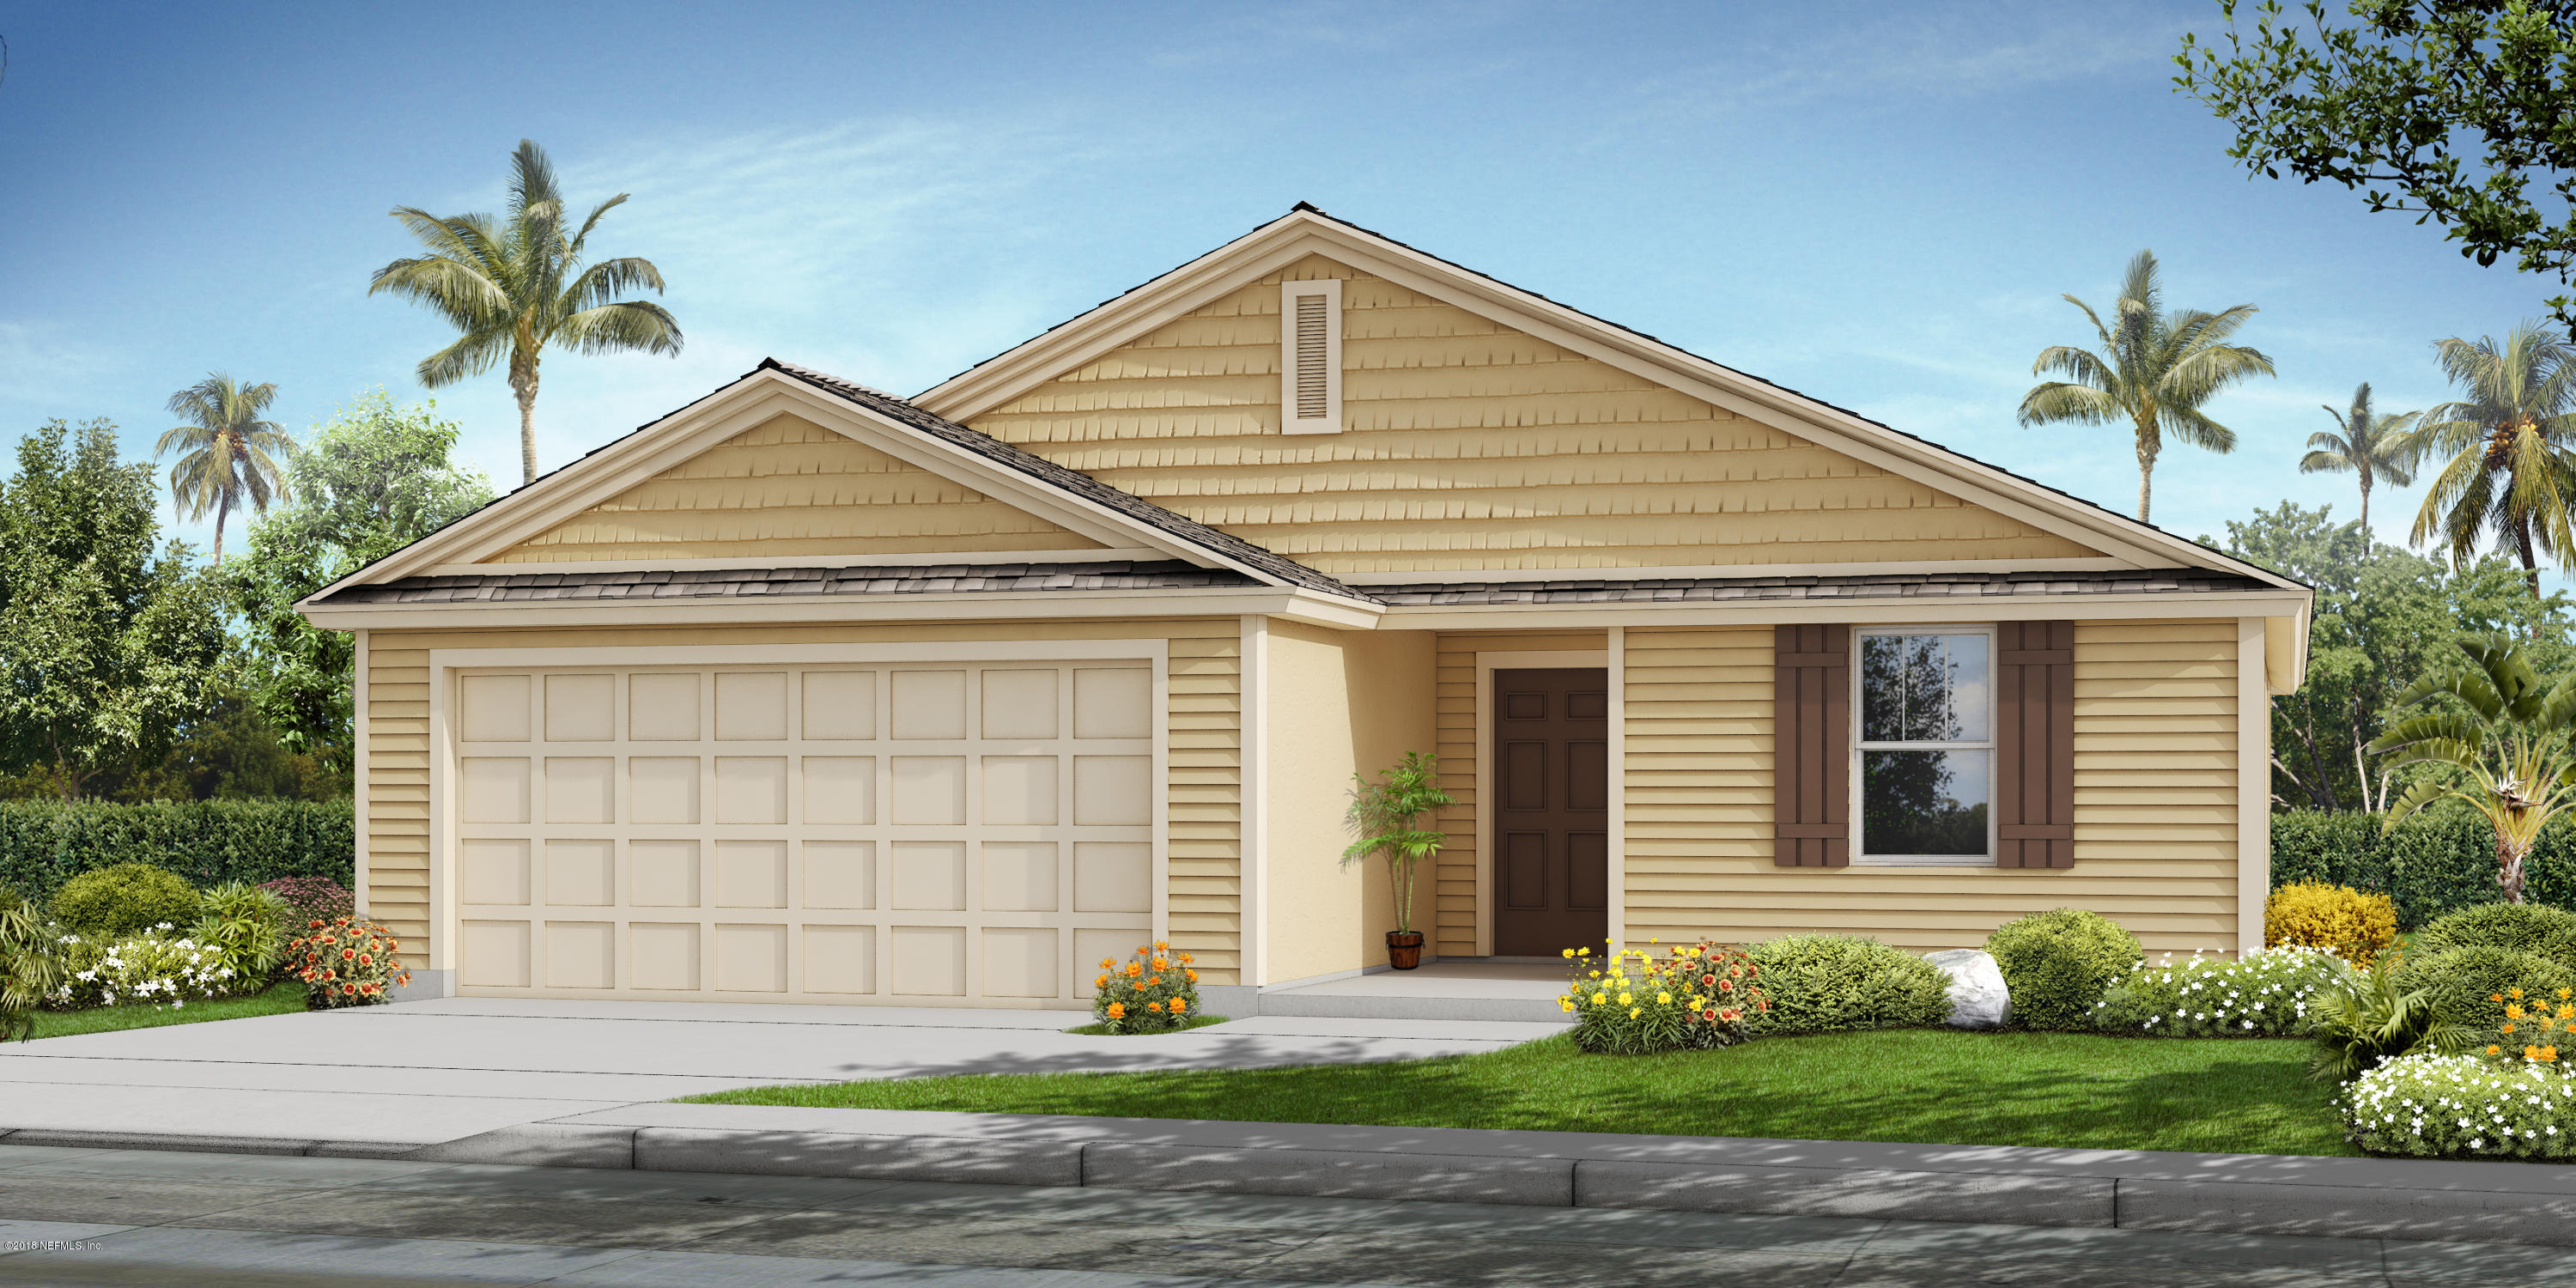 2380 SOTTERLEY, JACKSONVILLE, FLORIDA 32220, 3 Bedrooms Bedrooms, ,2 BathroomsBathrooms,Residential - single family,For sale,SOTTERLEY,952498